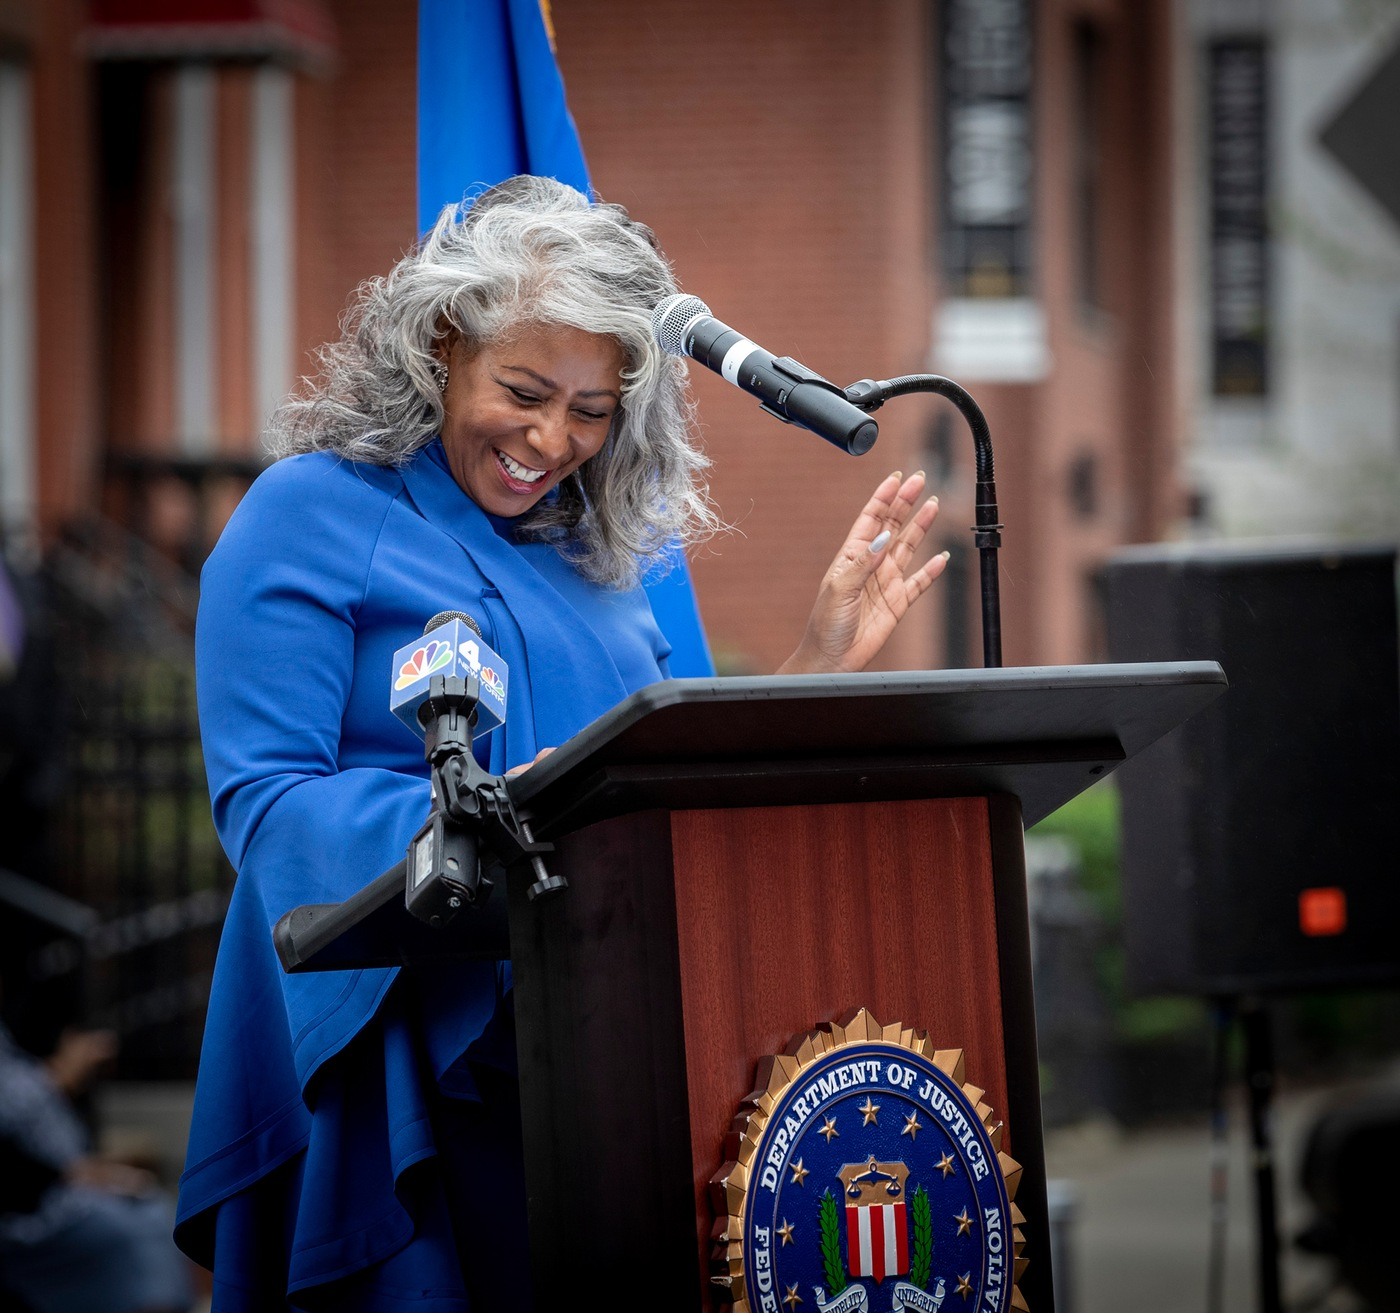 Lee Ann Woodriffe speaks during an April 26, 2019 street renaming ceremony in Brooklyn, New York, in honor of her father, Edwin R. Woodriffe, who was the first African-American FBI agent killed in the line of duty.